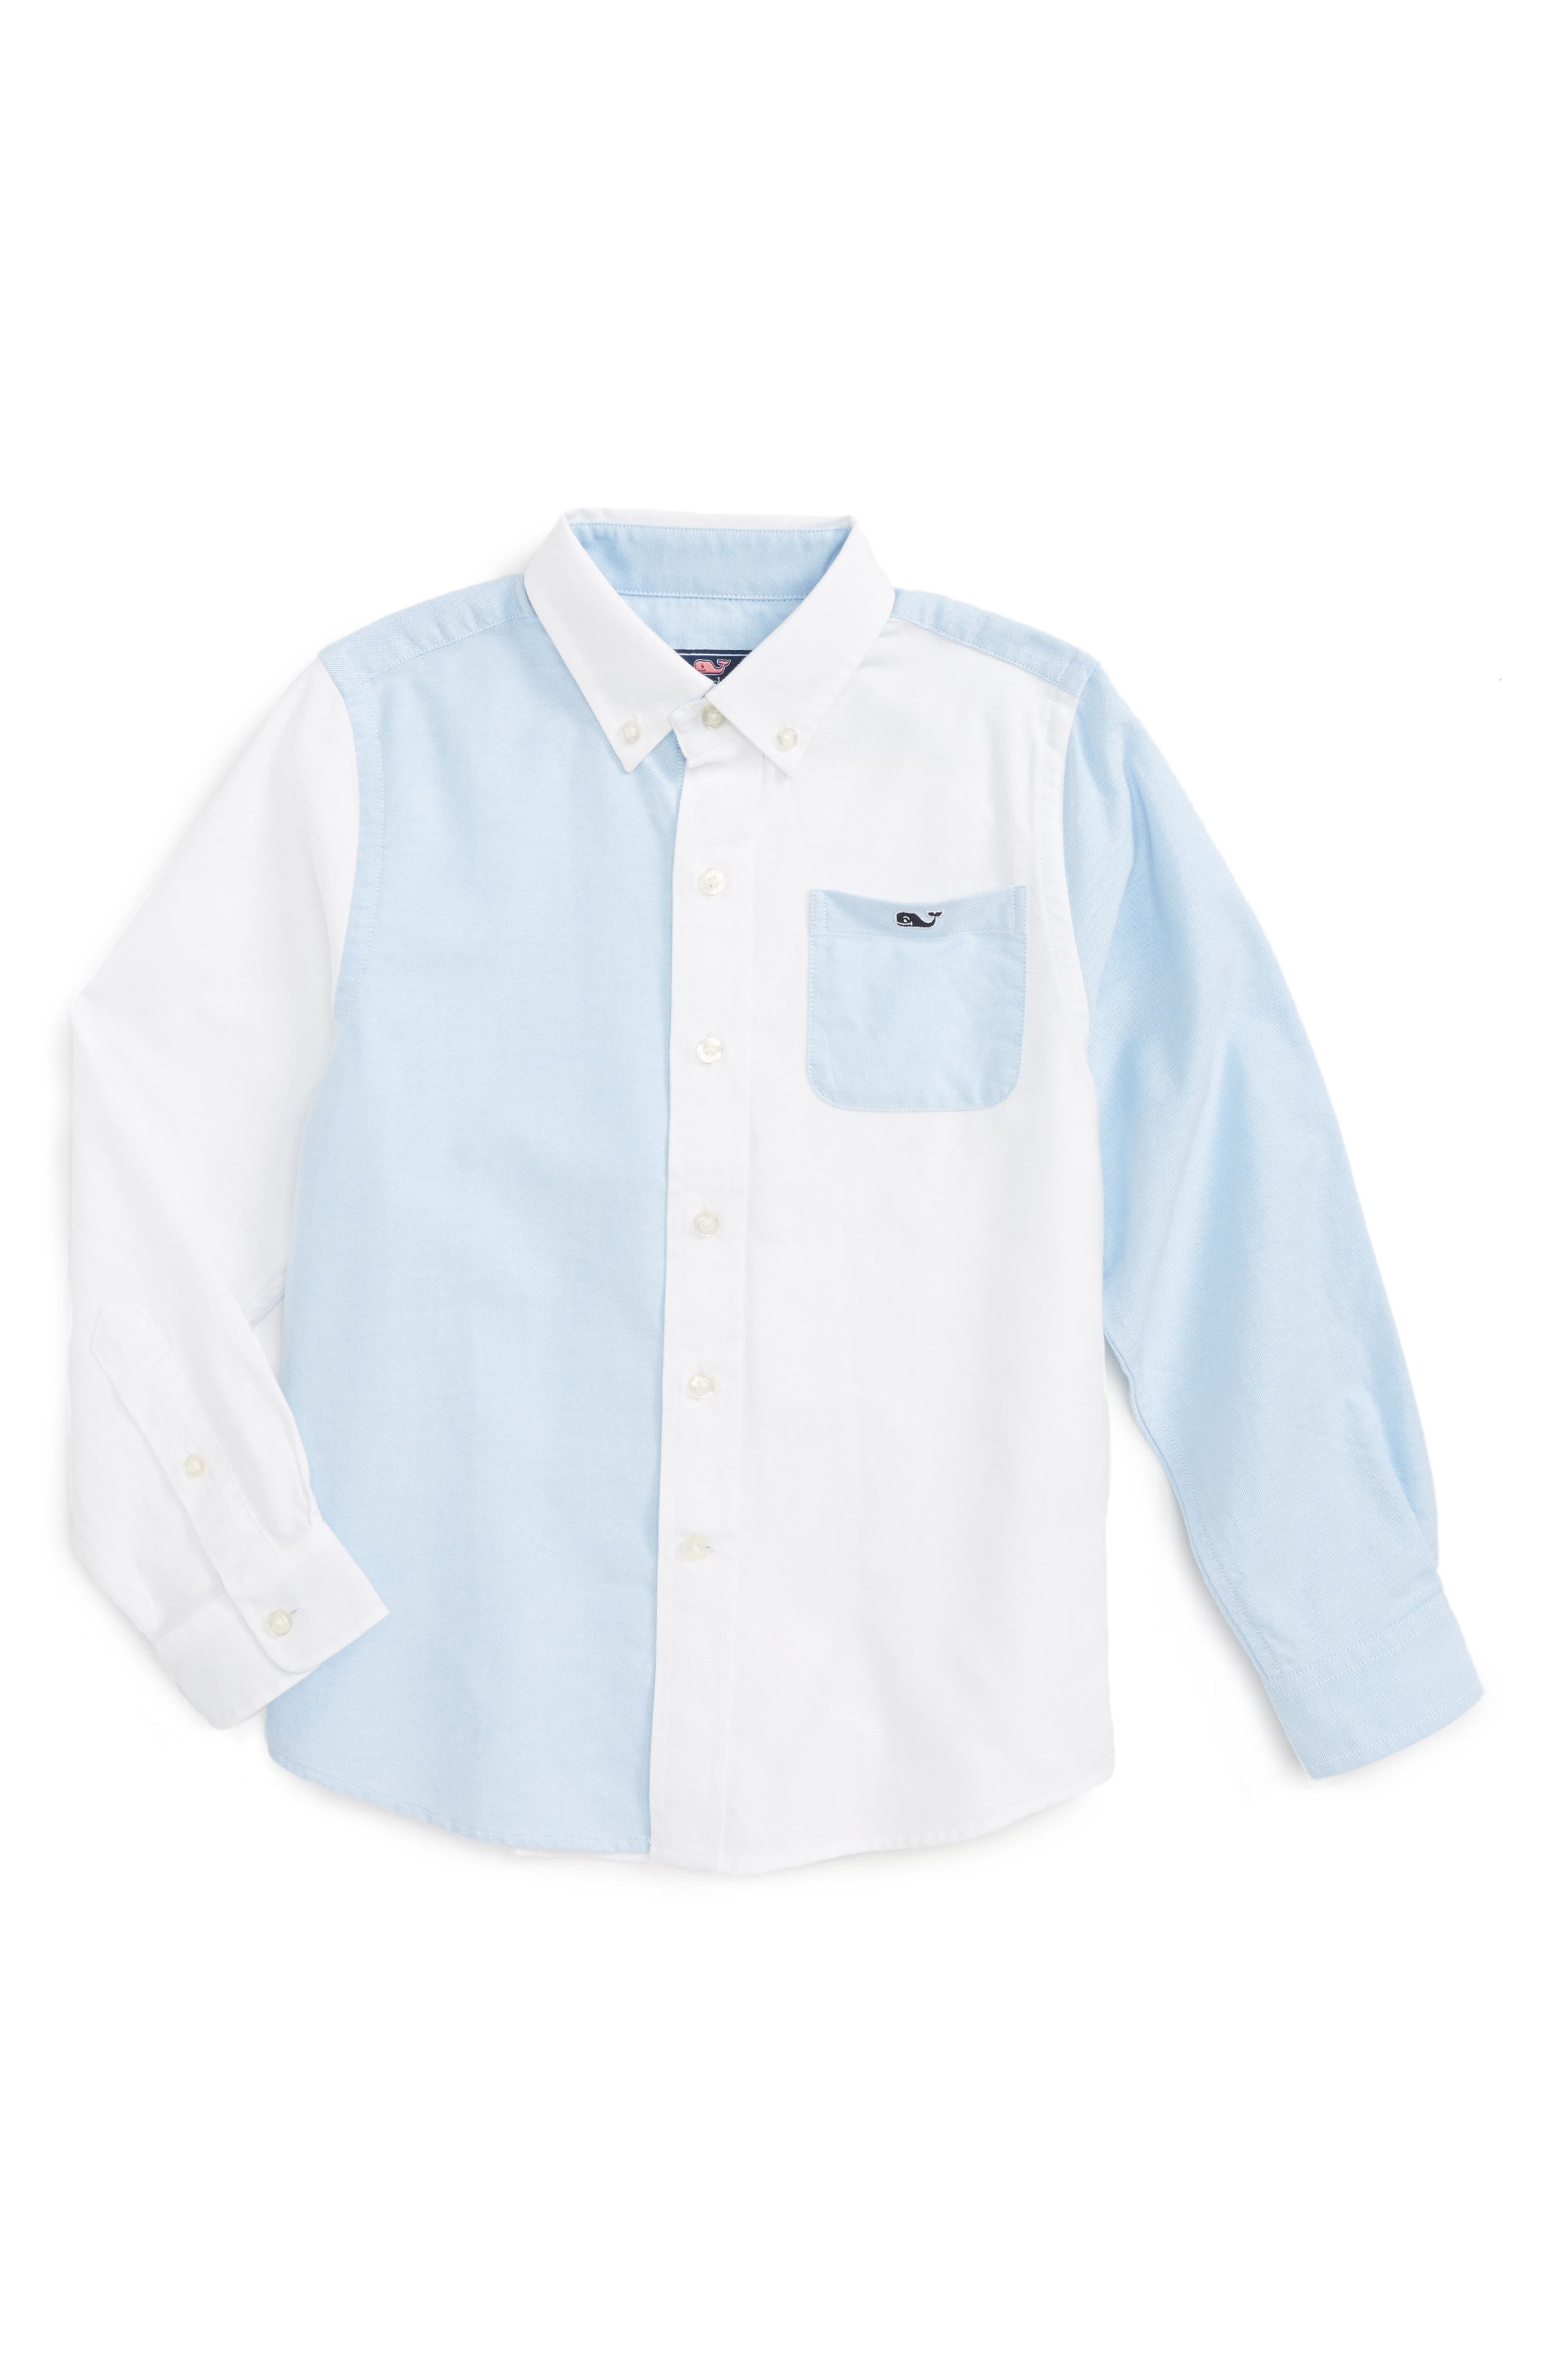 Main Image - vineyard vines Party Whale Oxford Shirt (Toddler Boys & Little Boys)